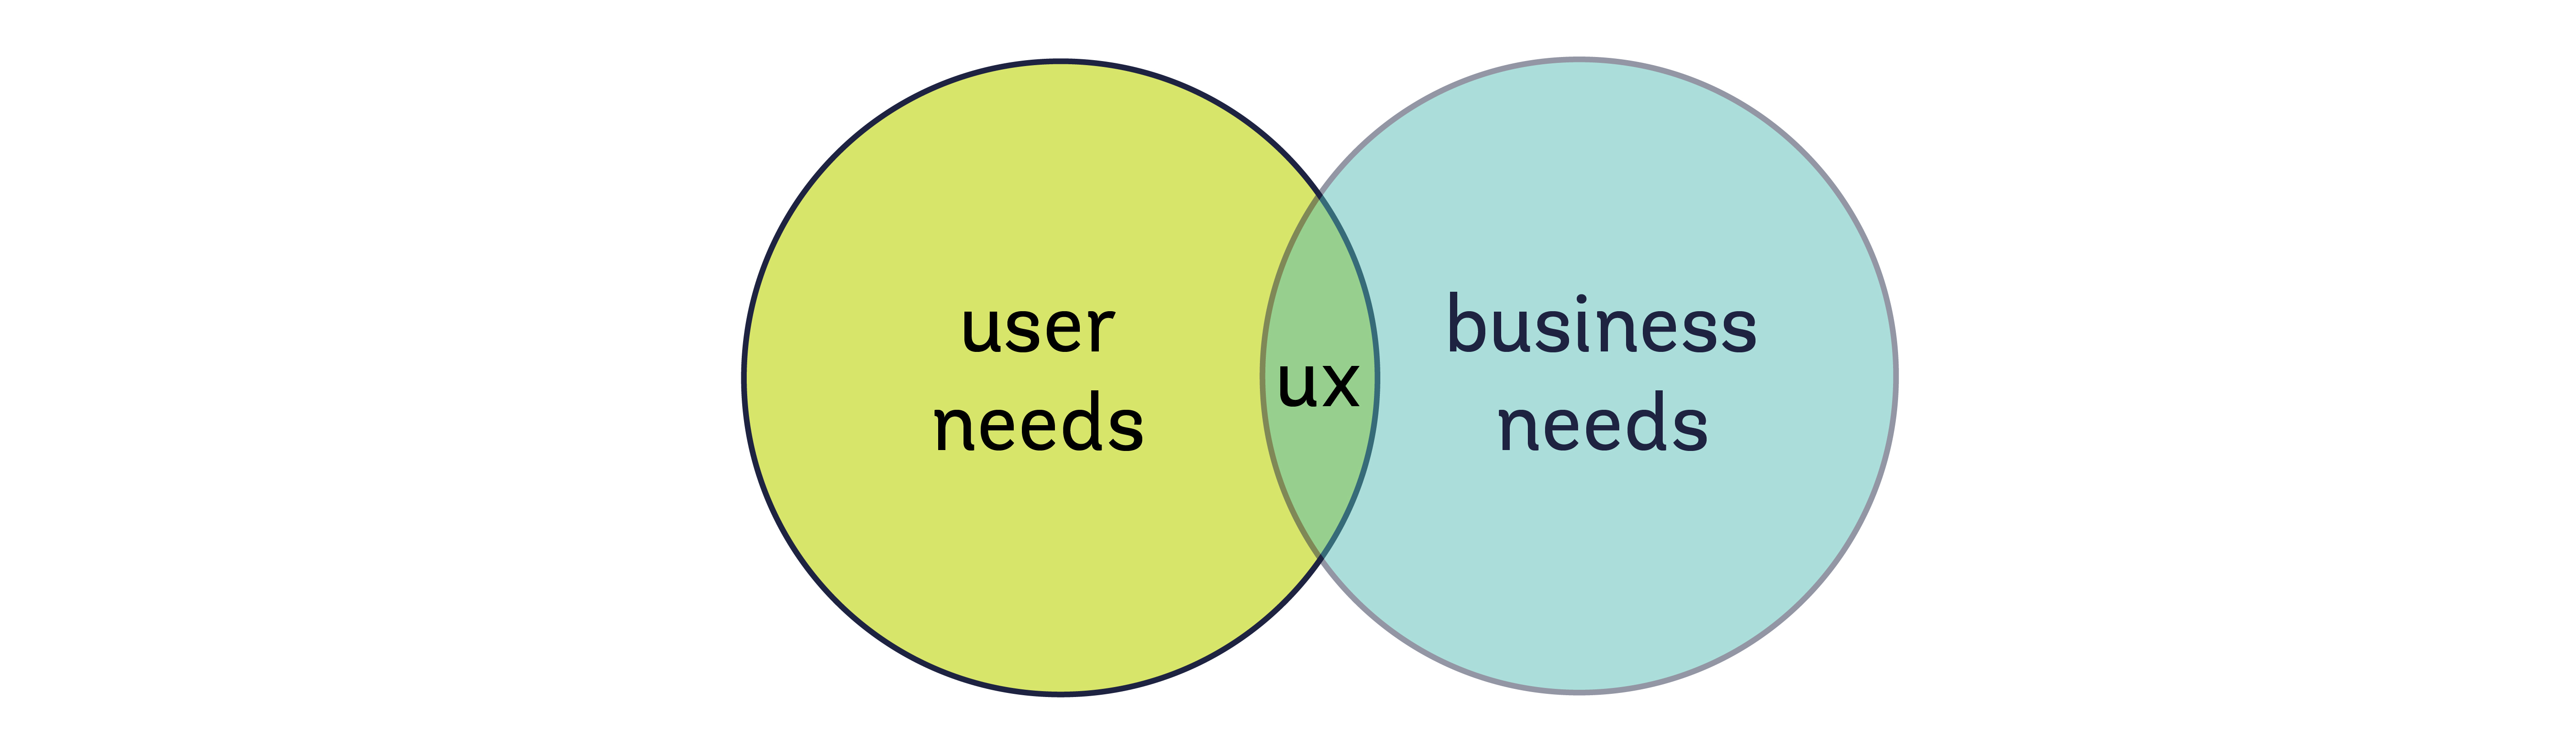 diagram_UX_userneeds_businessneeds